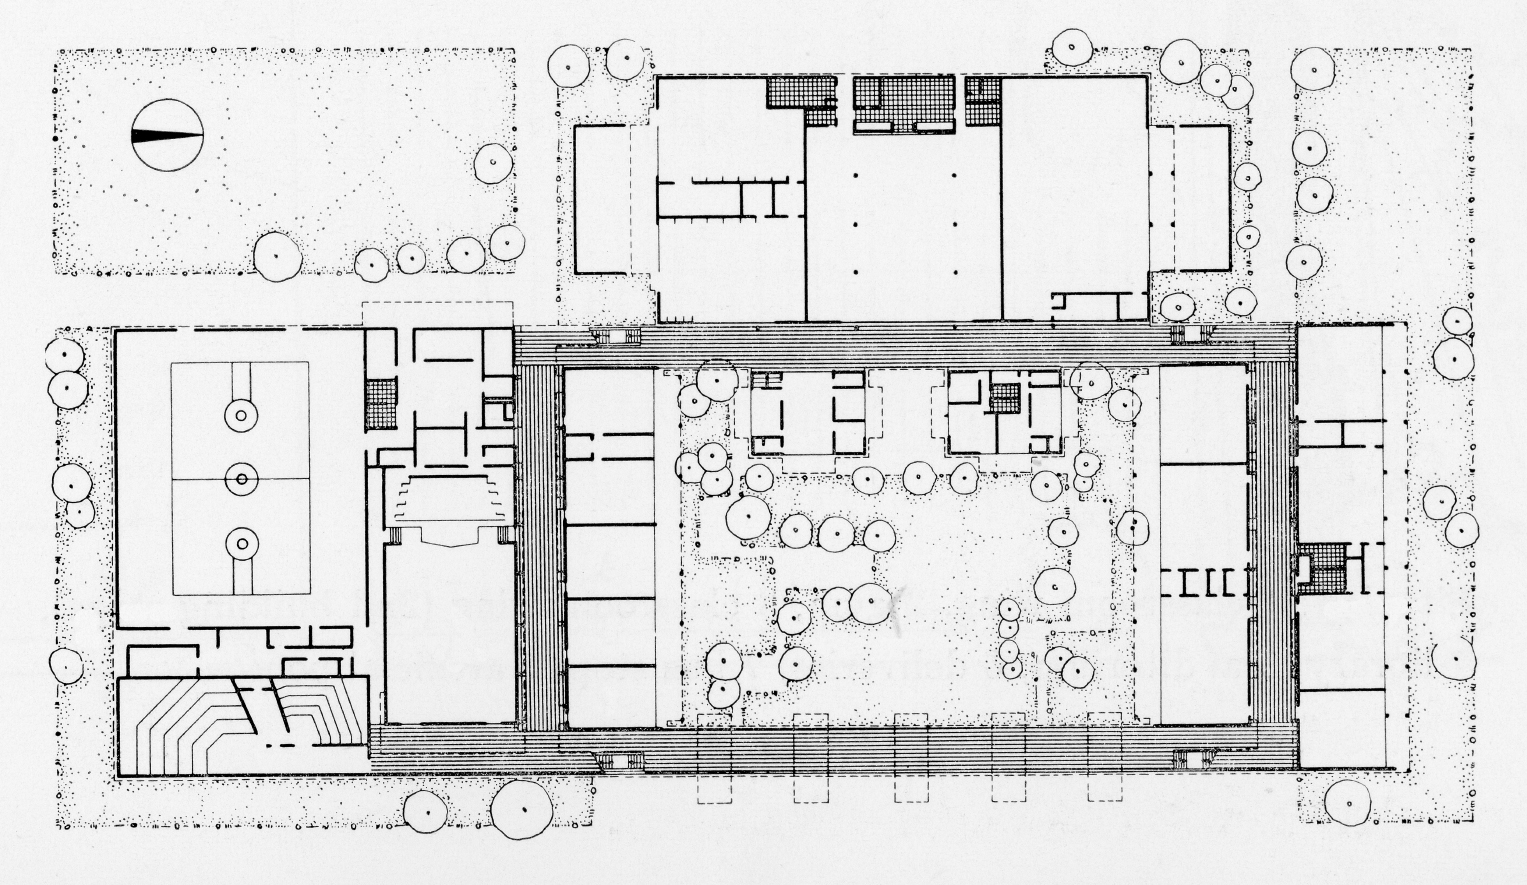 Riverview High School, Sarasota, Florida. First Floor Plan.